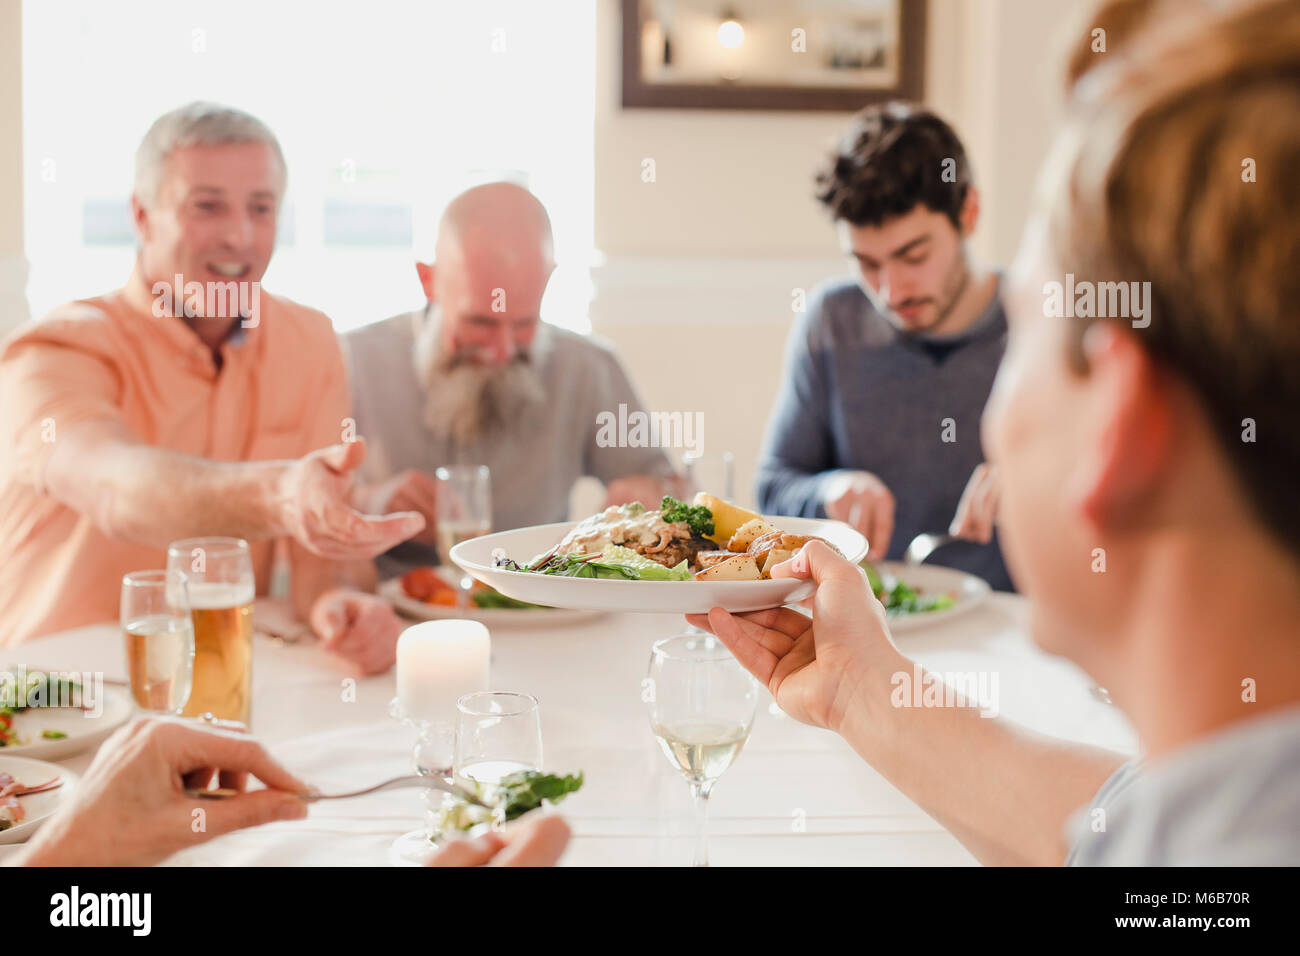 A table of male guests are eating at a wedding dinner together, One of the men is passing his plate to someone else - Stock Image